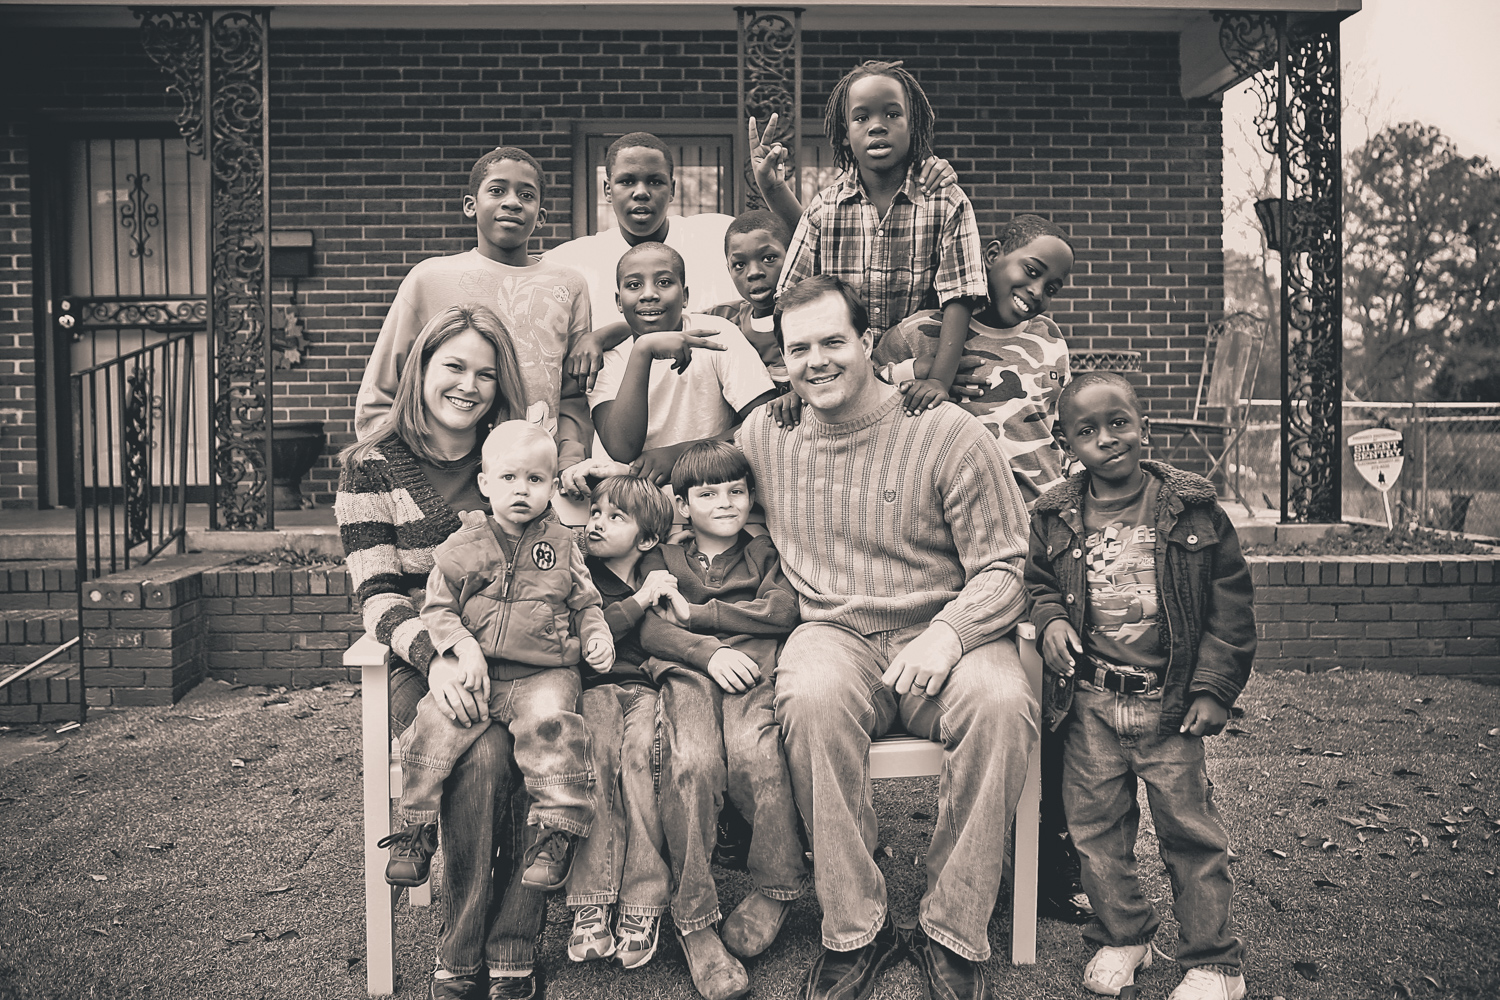 Founder Bryan Kelly and his wife, Delta, with their family and students from the neighborhood.